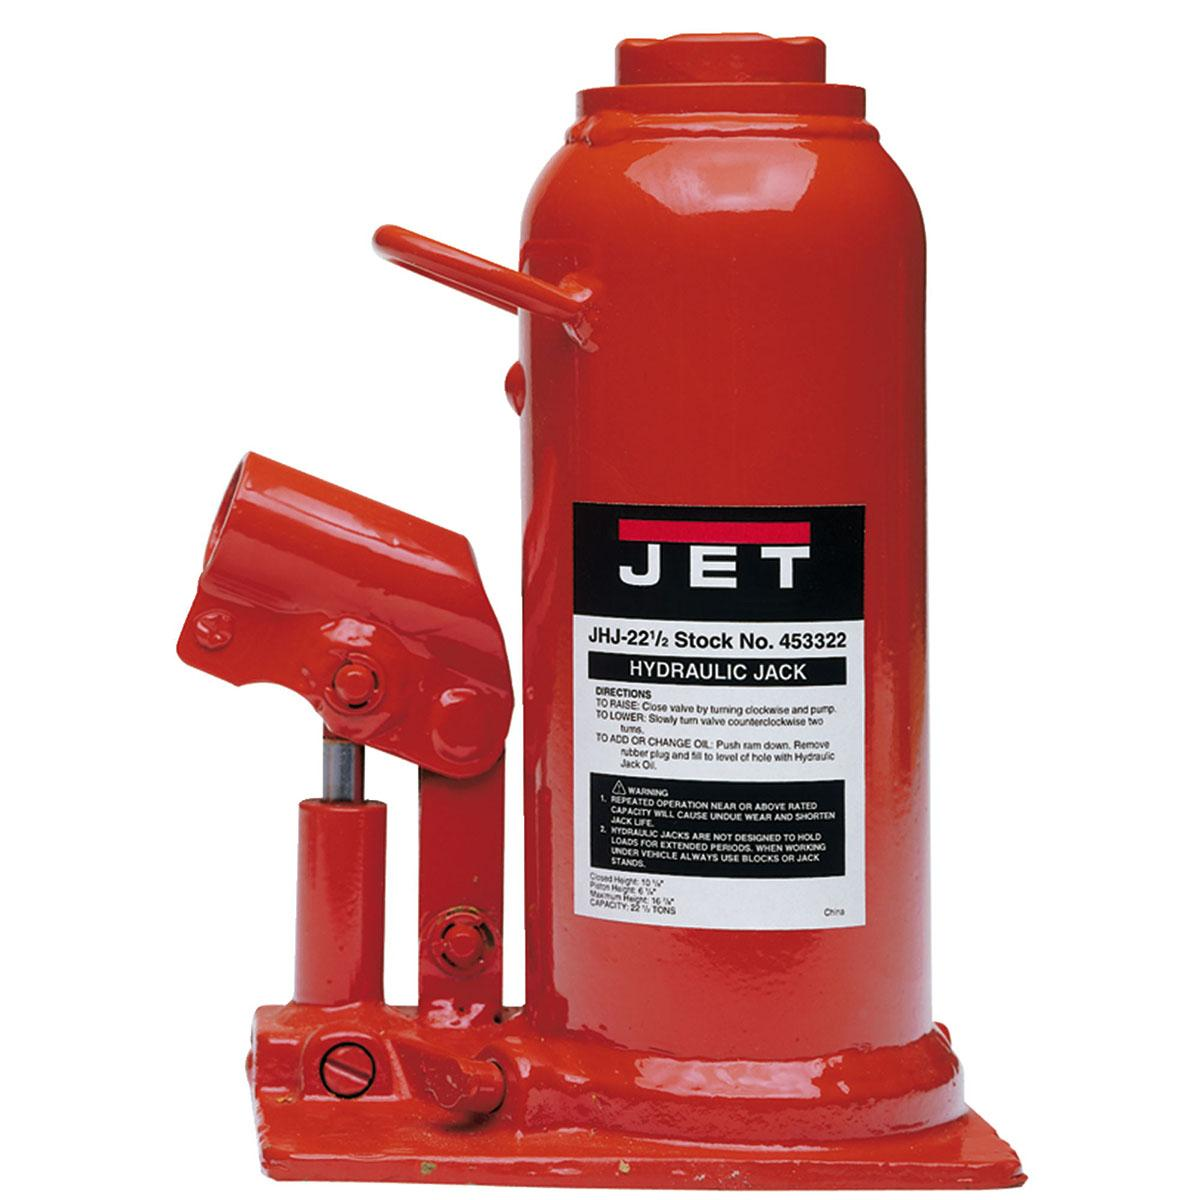 JHJ-22-1/2 22-1/2T HYD BOTTLE JACK